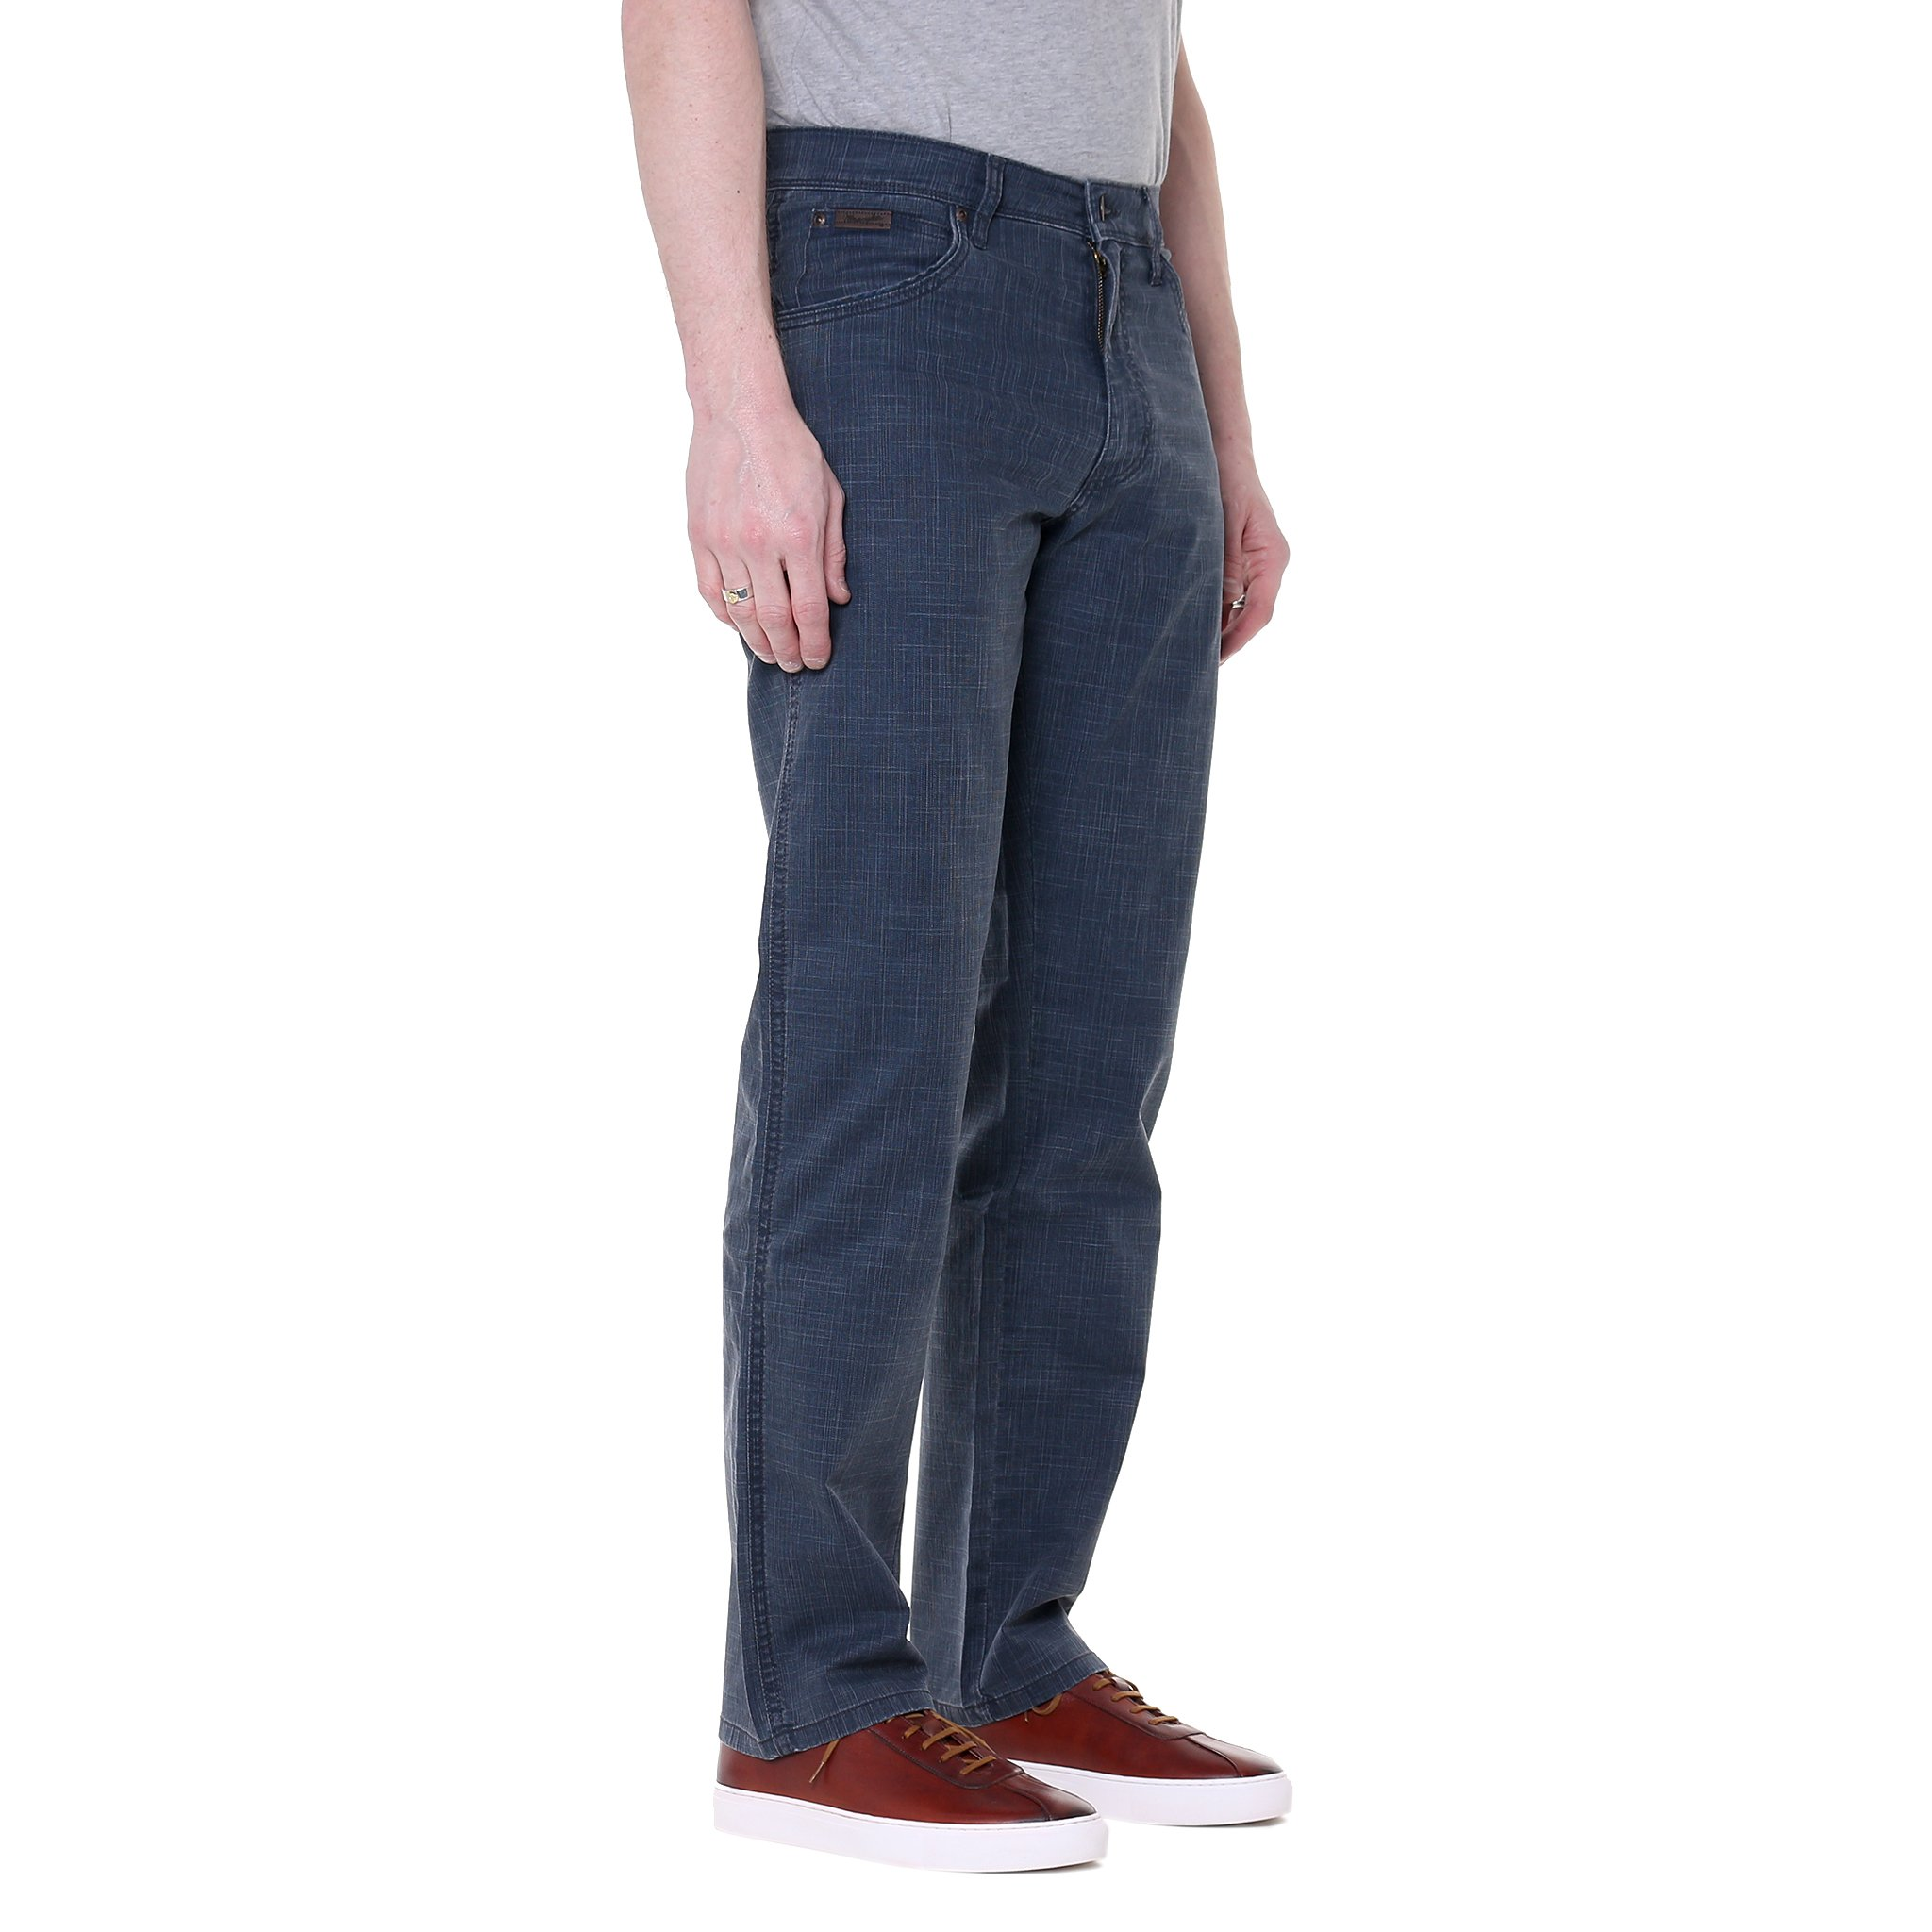 to 42 in. MENS WRANGLER CHINO JEANS SOFT STRAIGHT LEG VINTAGE SIZE 28 in